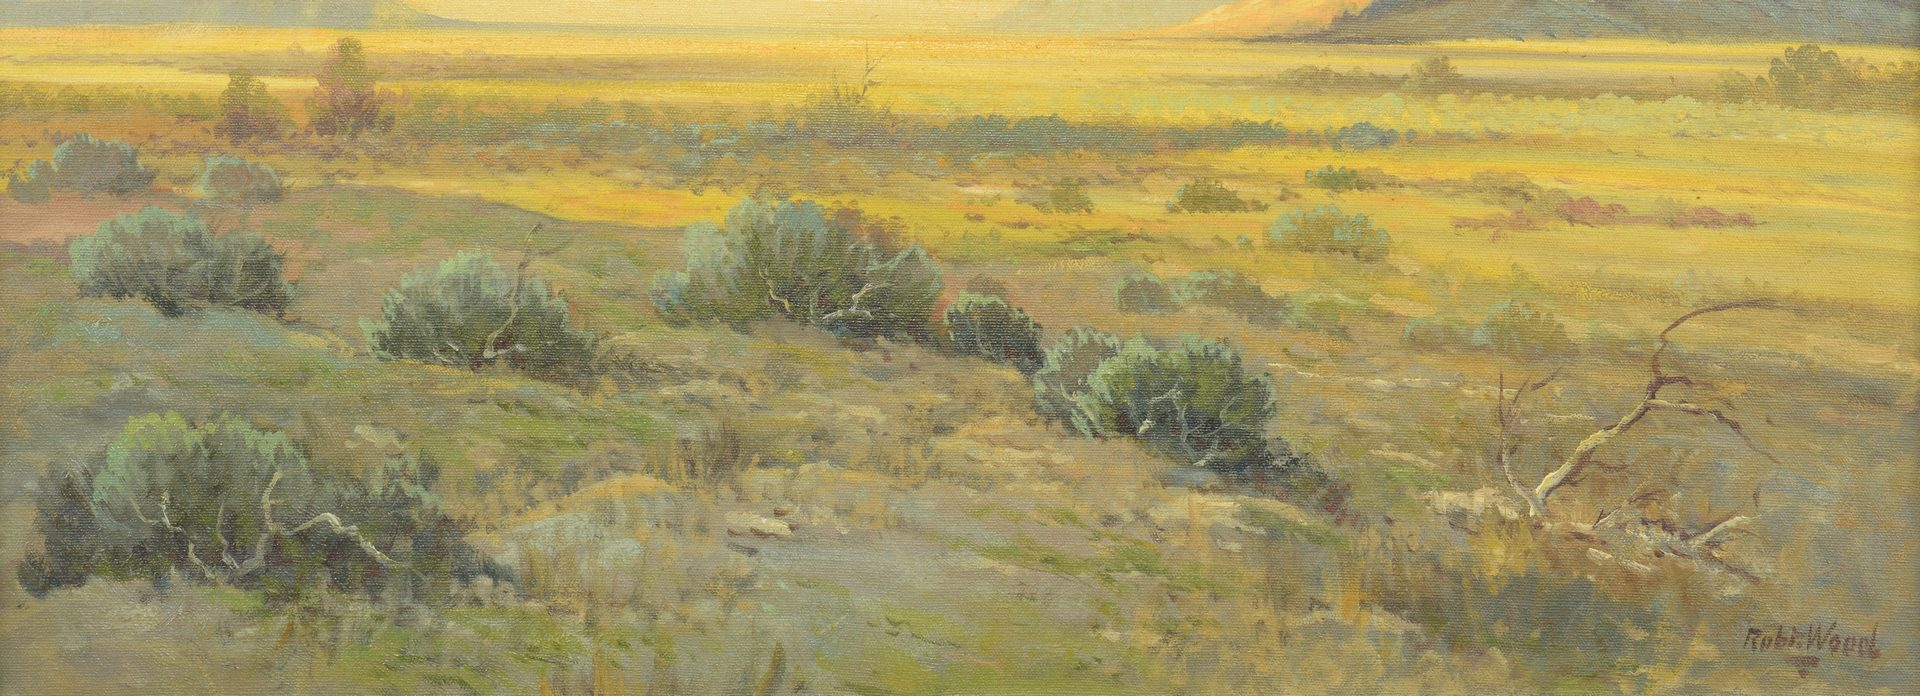 Lot 165: Robert Wood New Mexico Landscape Oil Painting